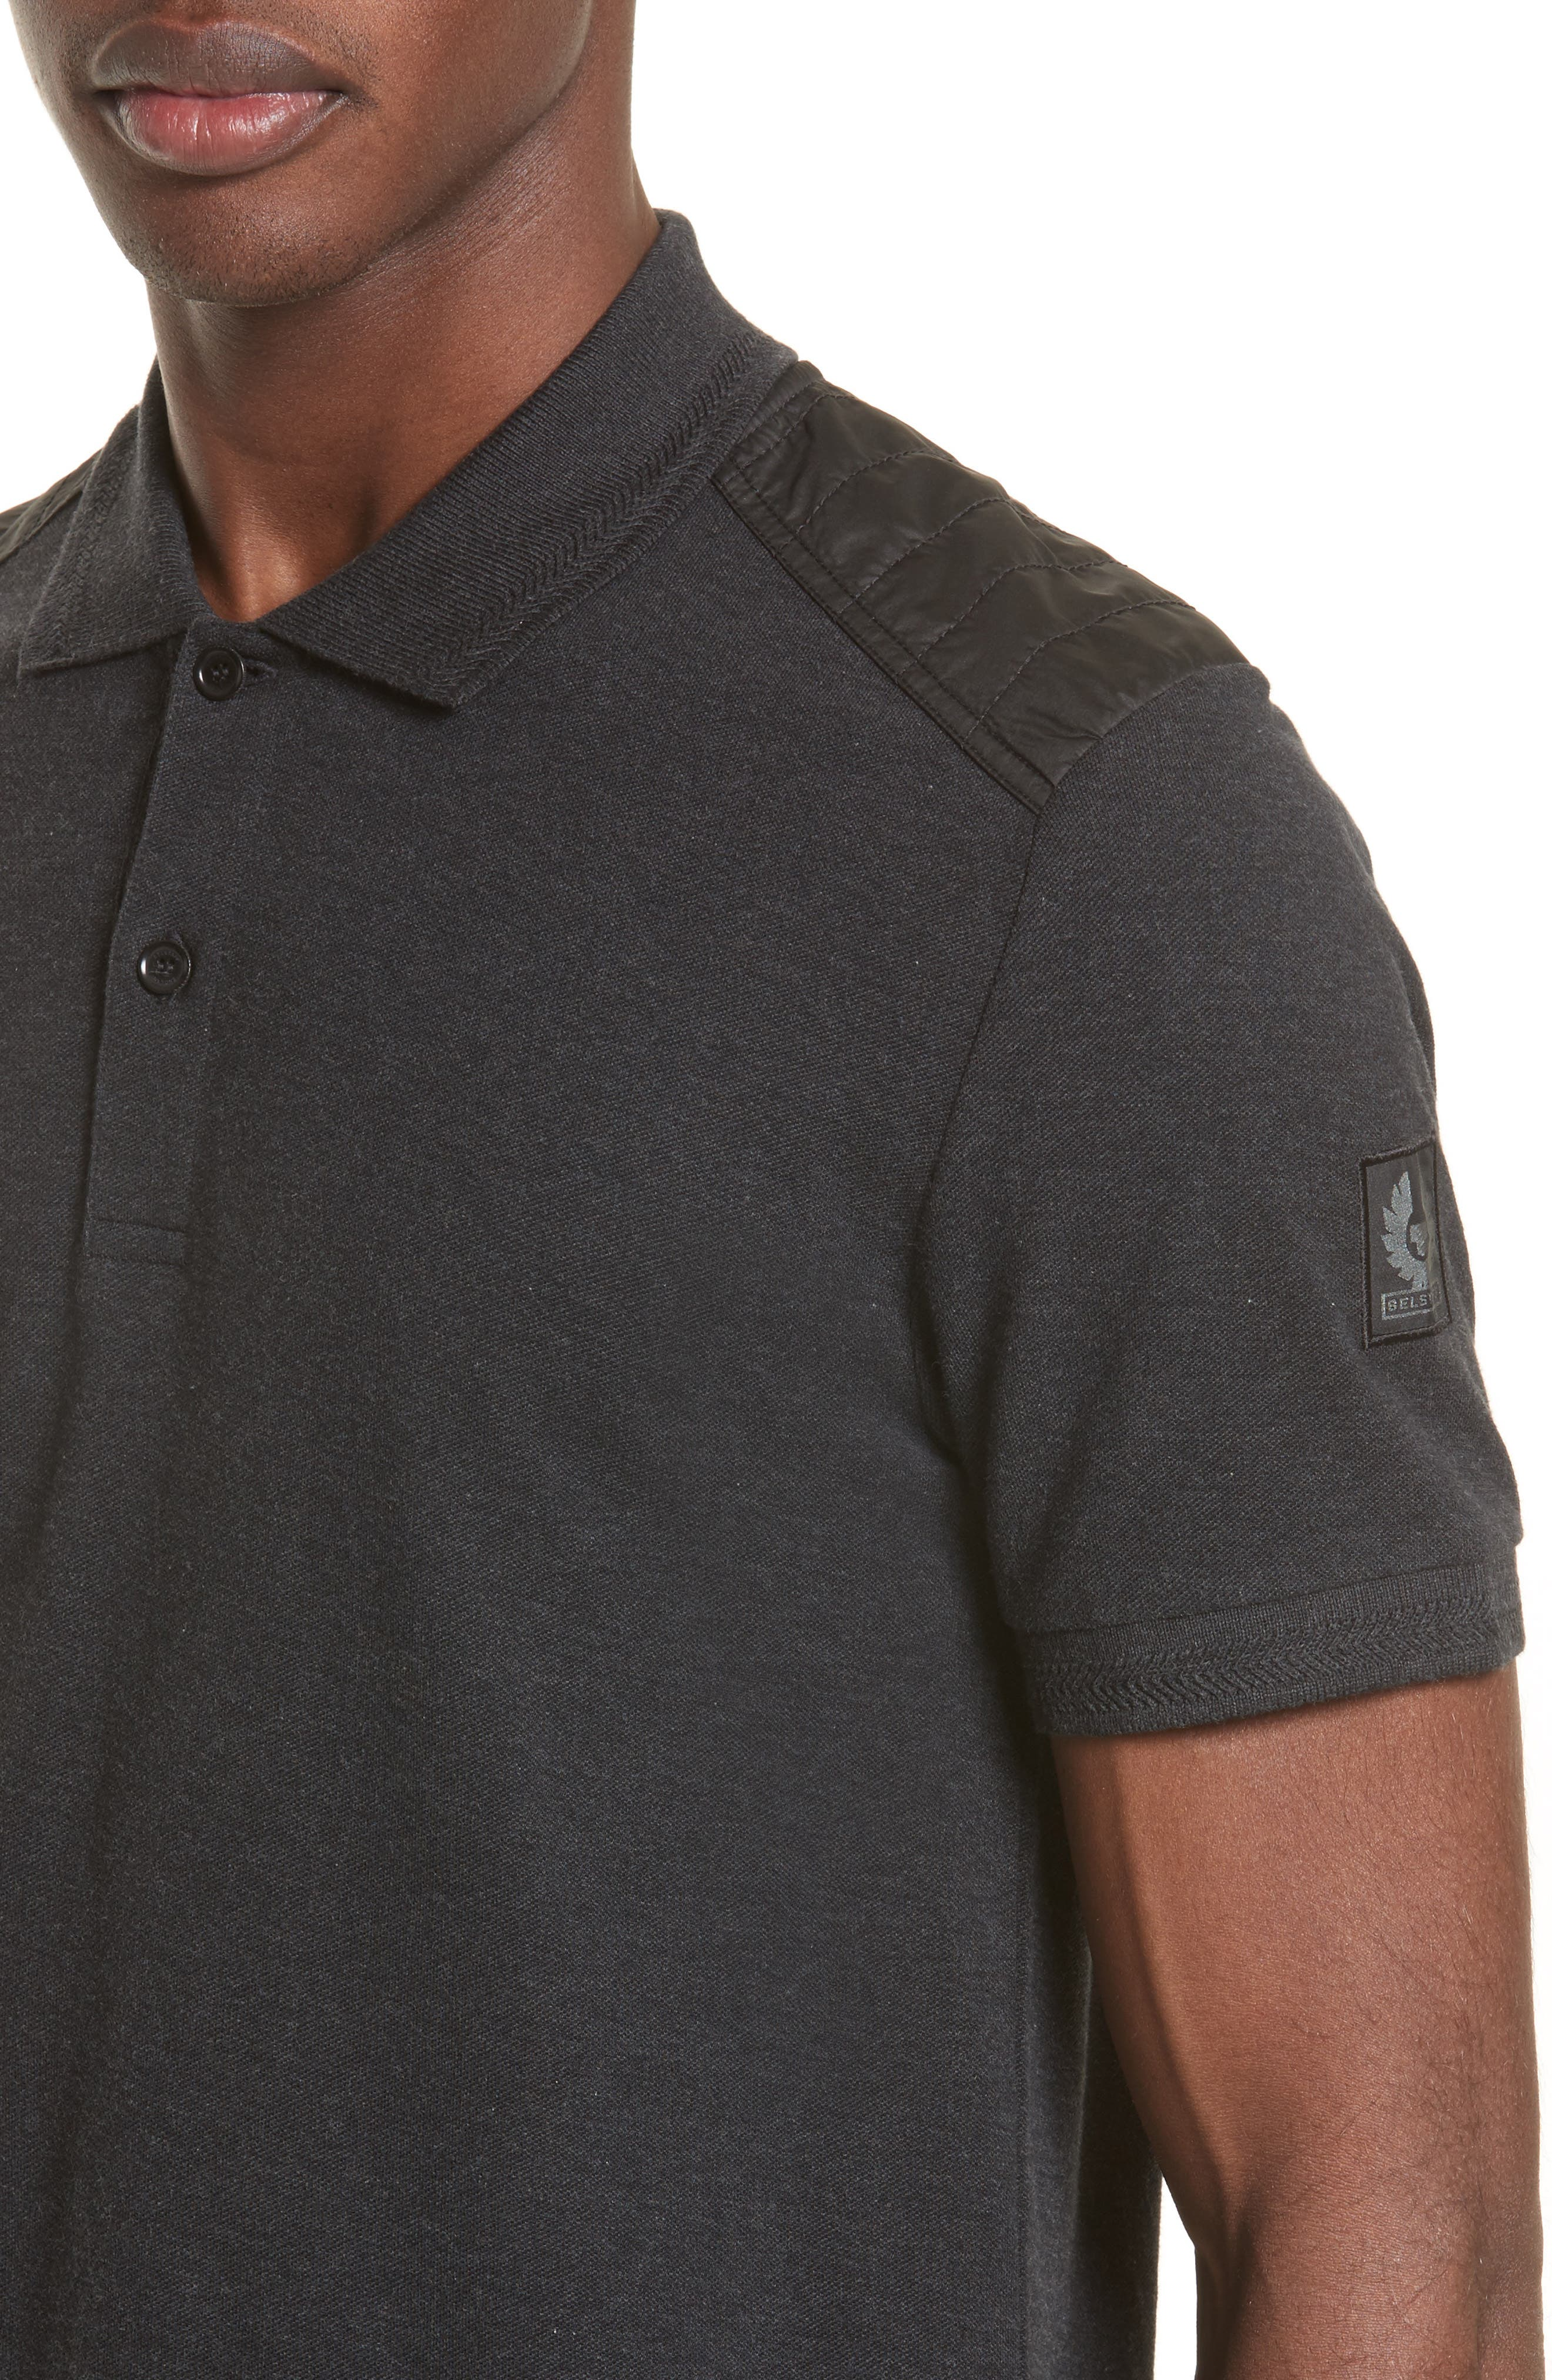 HItchin Extra Trim Fit Piqué Polo,                             Alternate thumbnail 16, color,